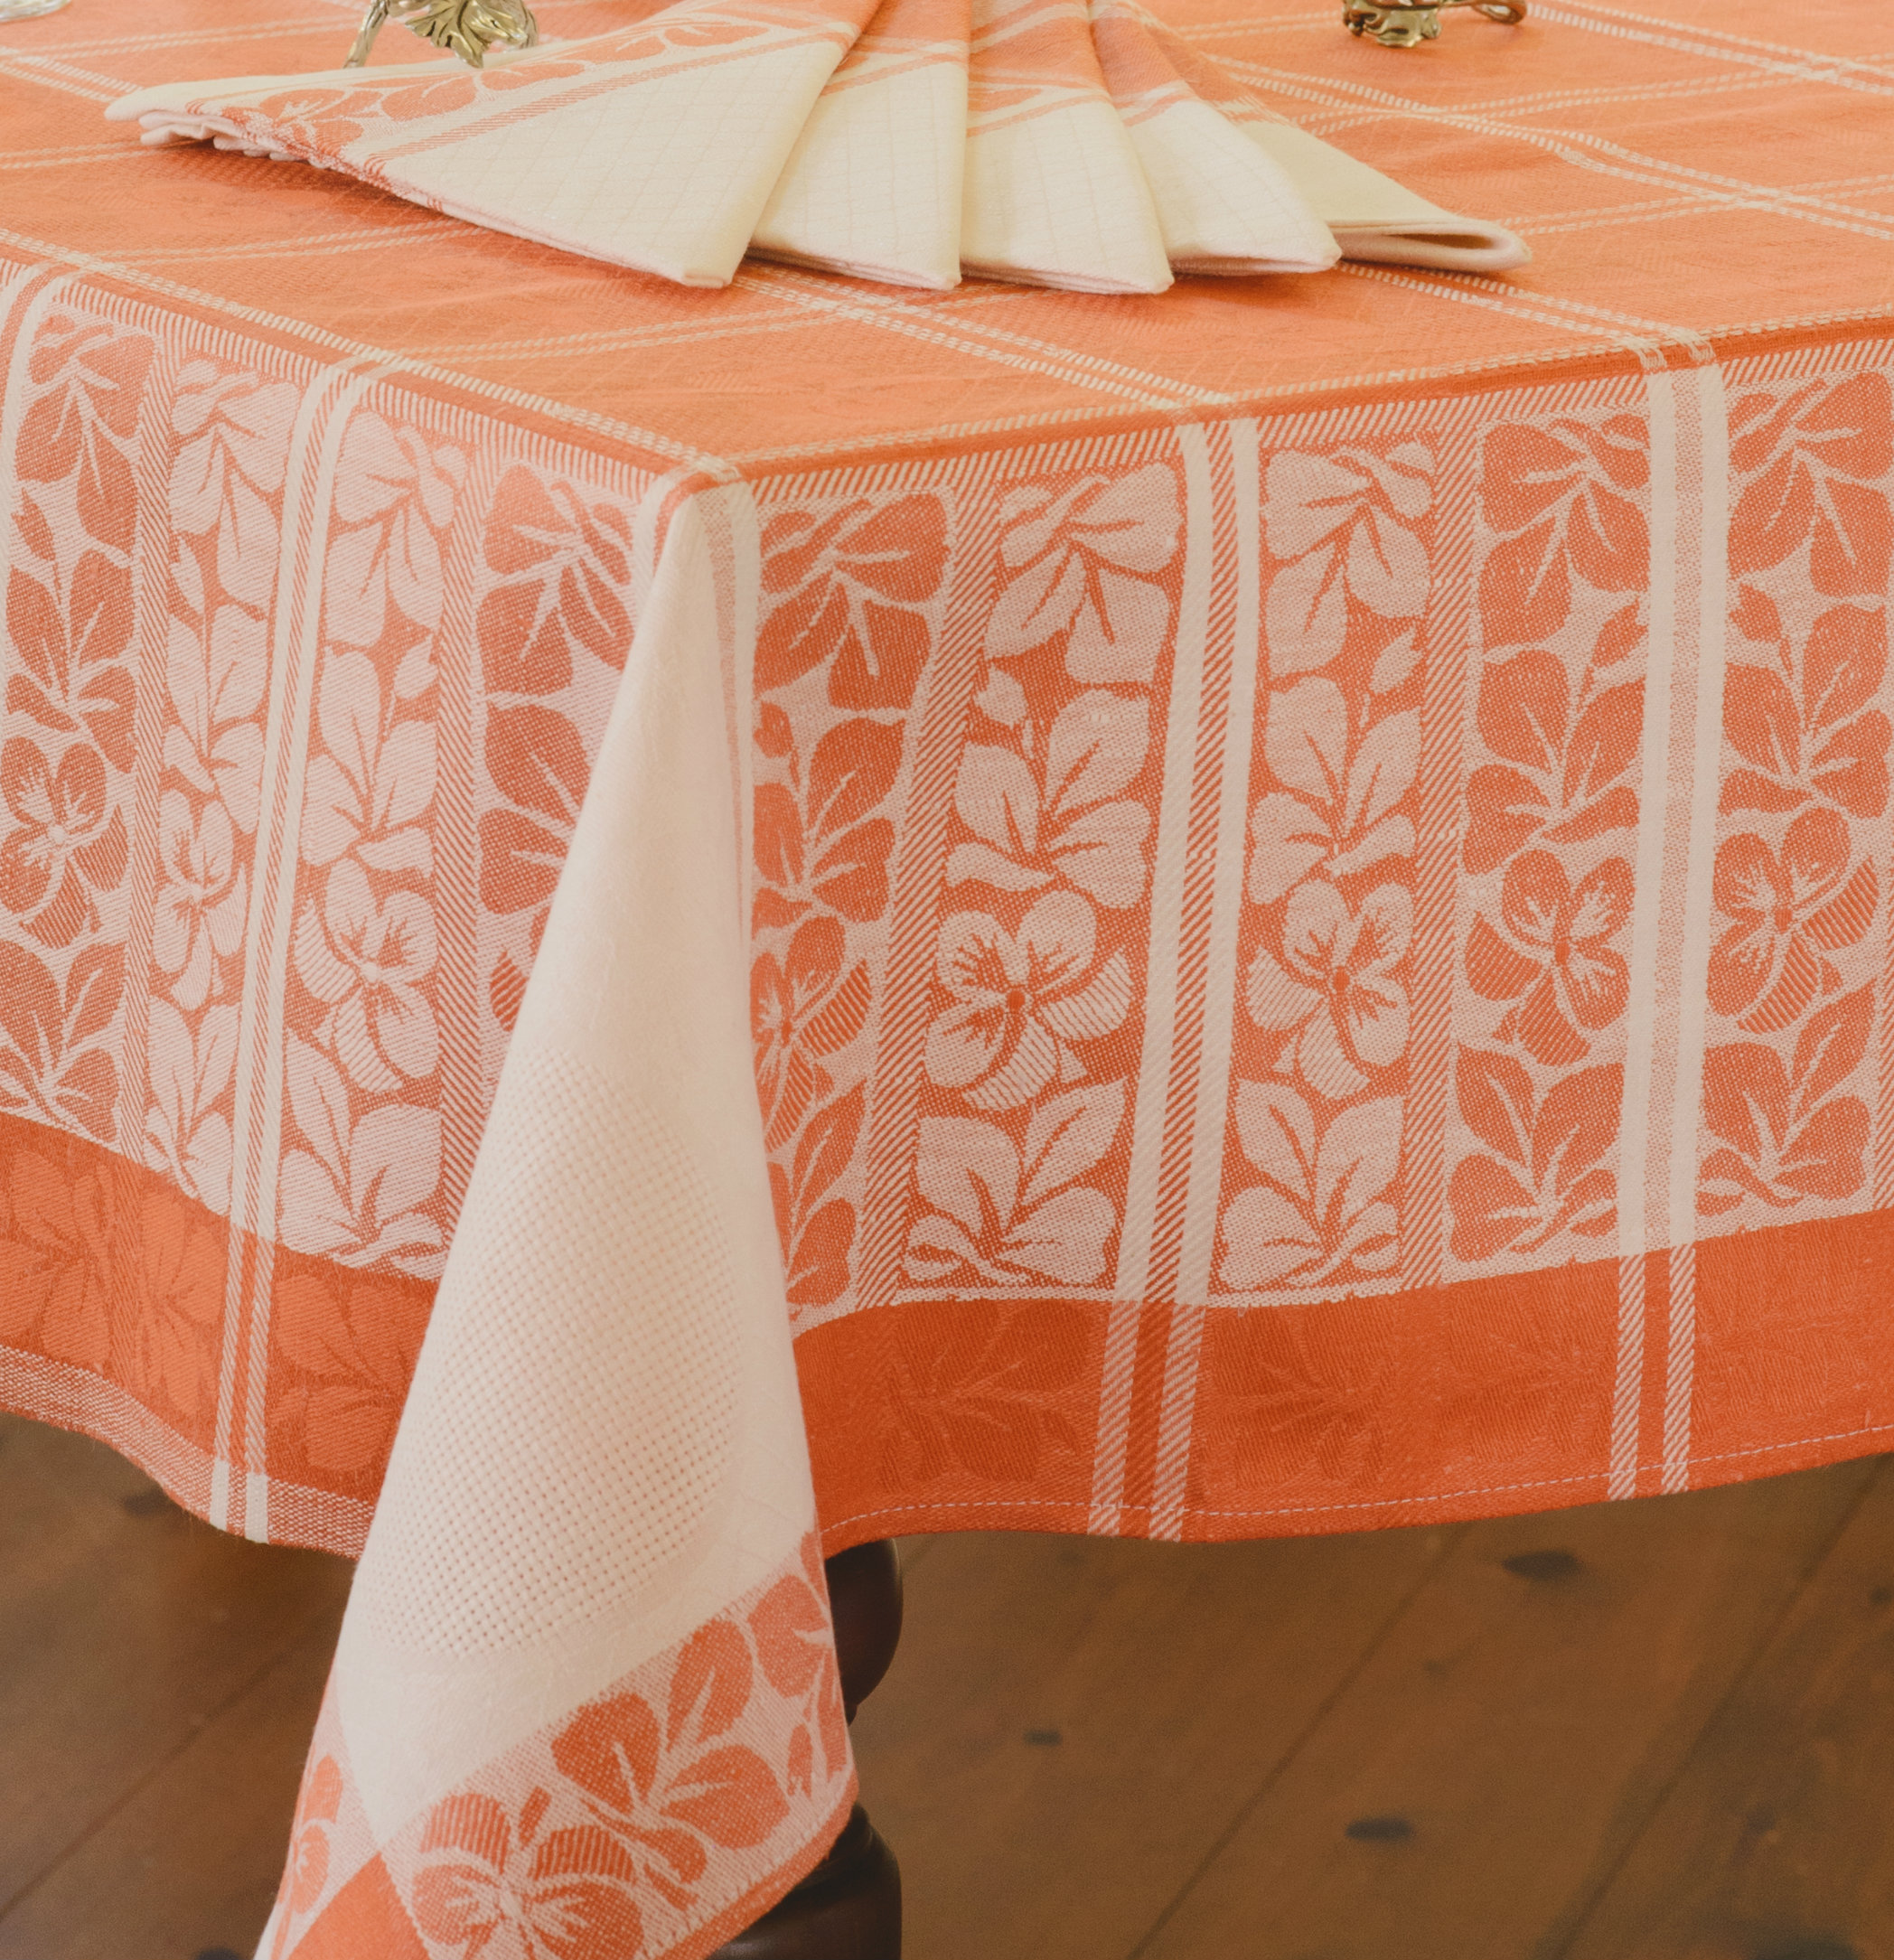 Table Solde Nappe En Lin Avec 6 Serviettes De Table- Orange Et Blanc